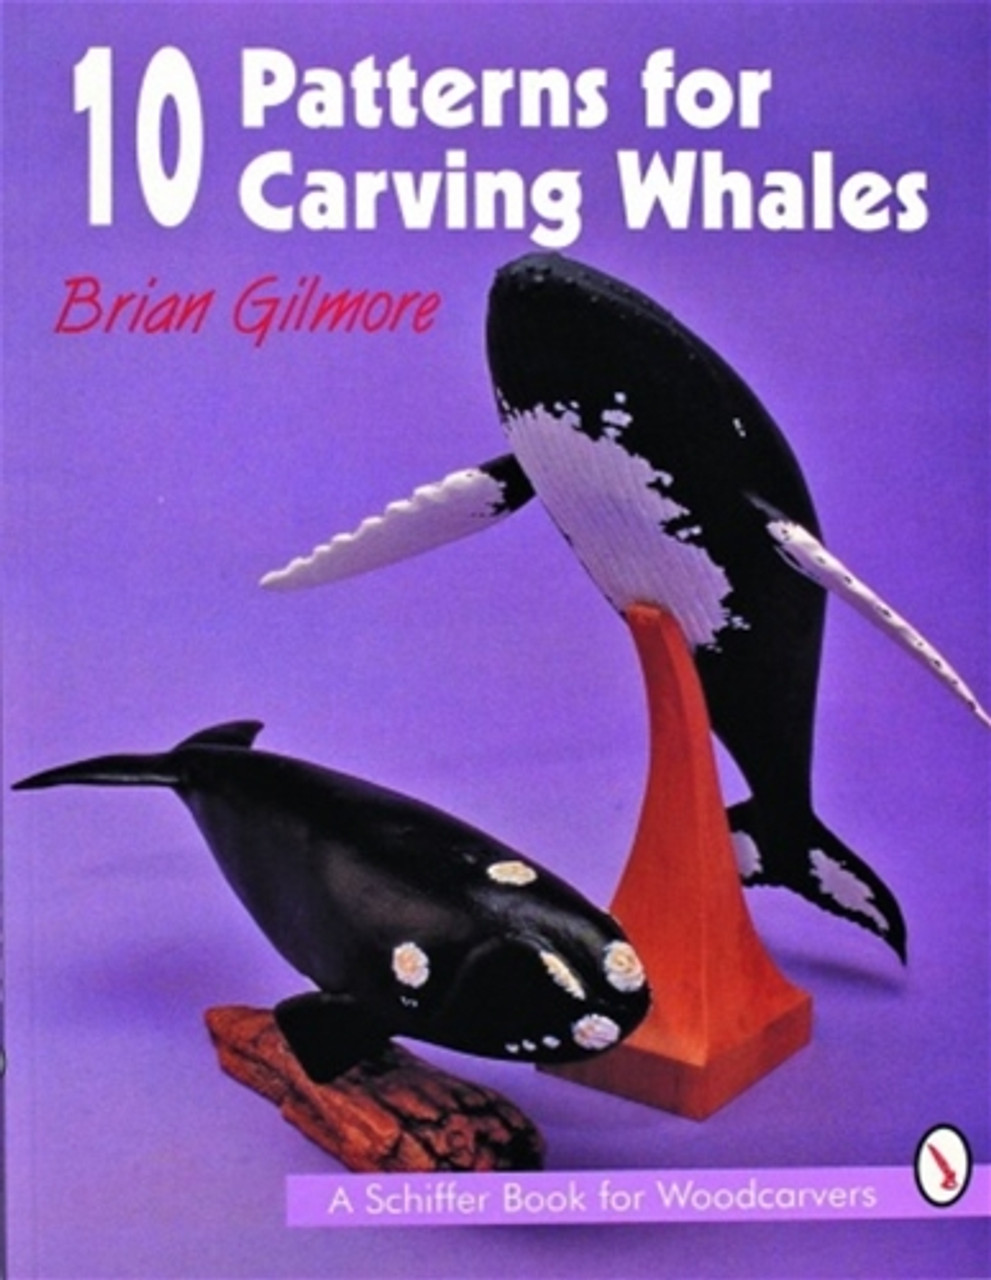 10 Patterns for Carving Whales showing a whale carving.